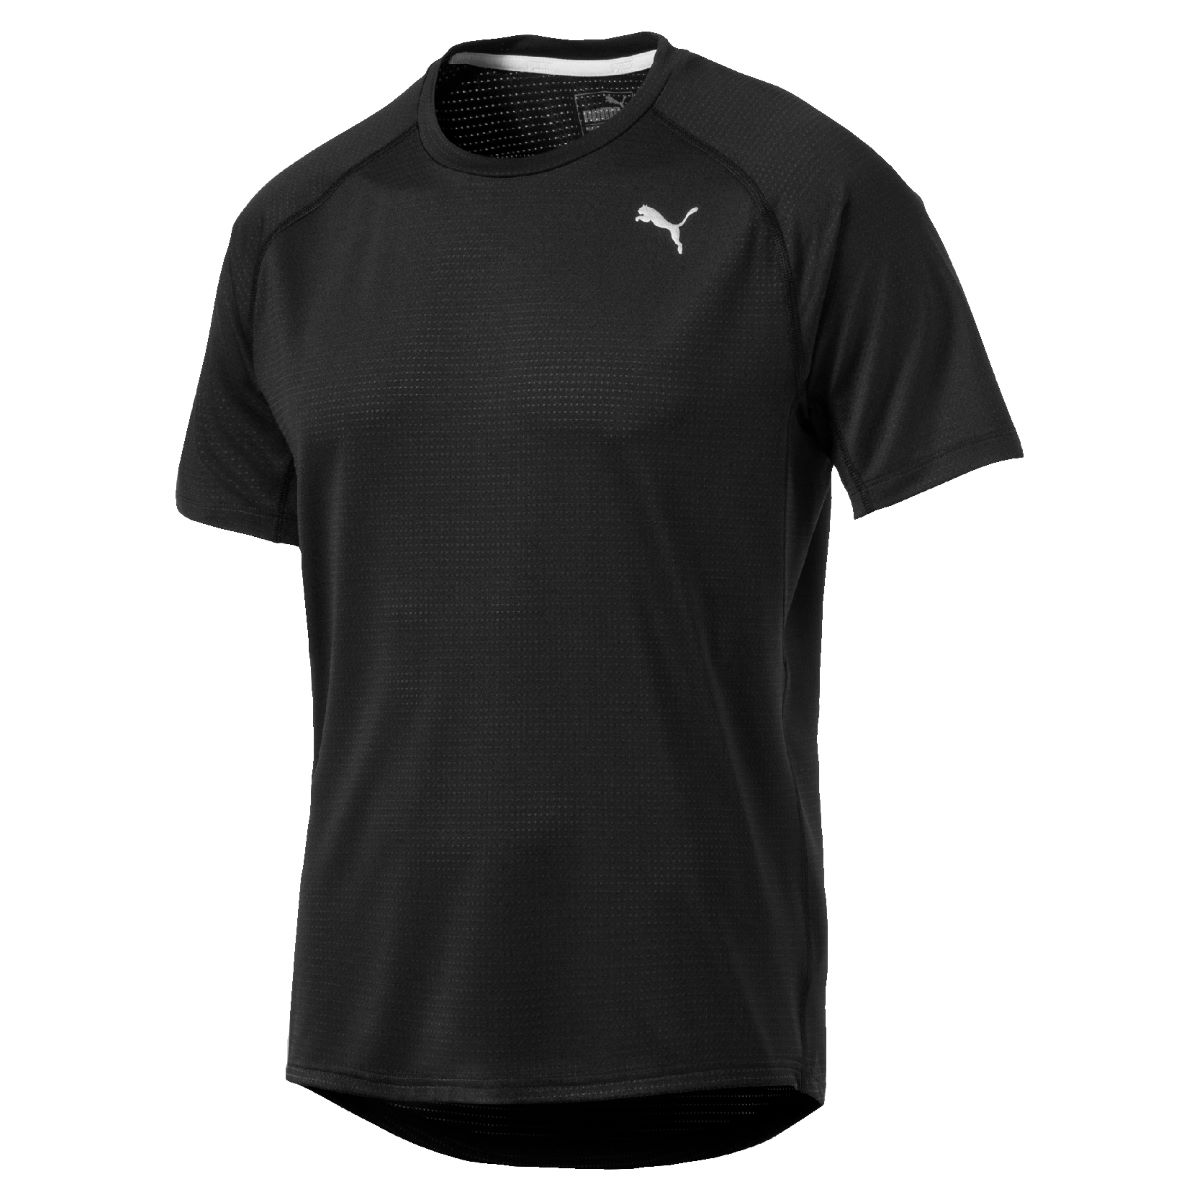 Maillot Puma Speed (manches courtes) - S Puma Black Heather